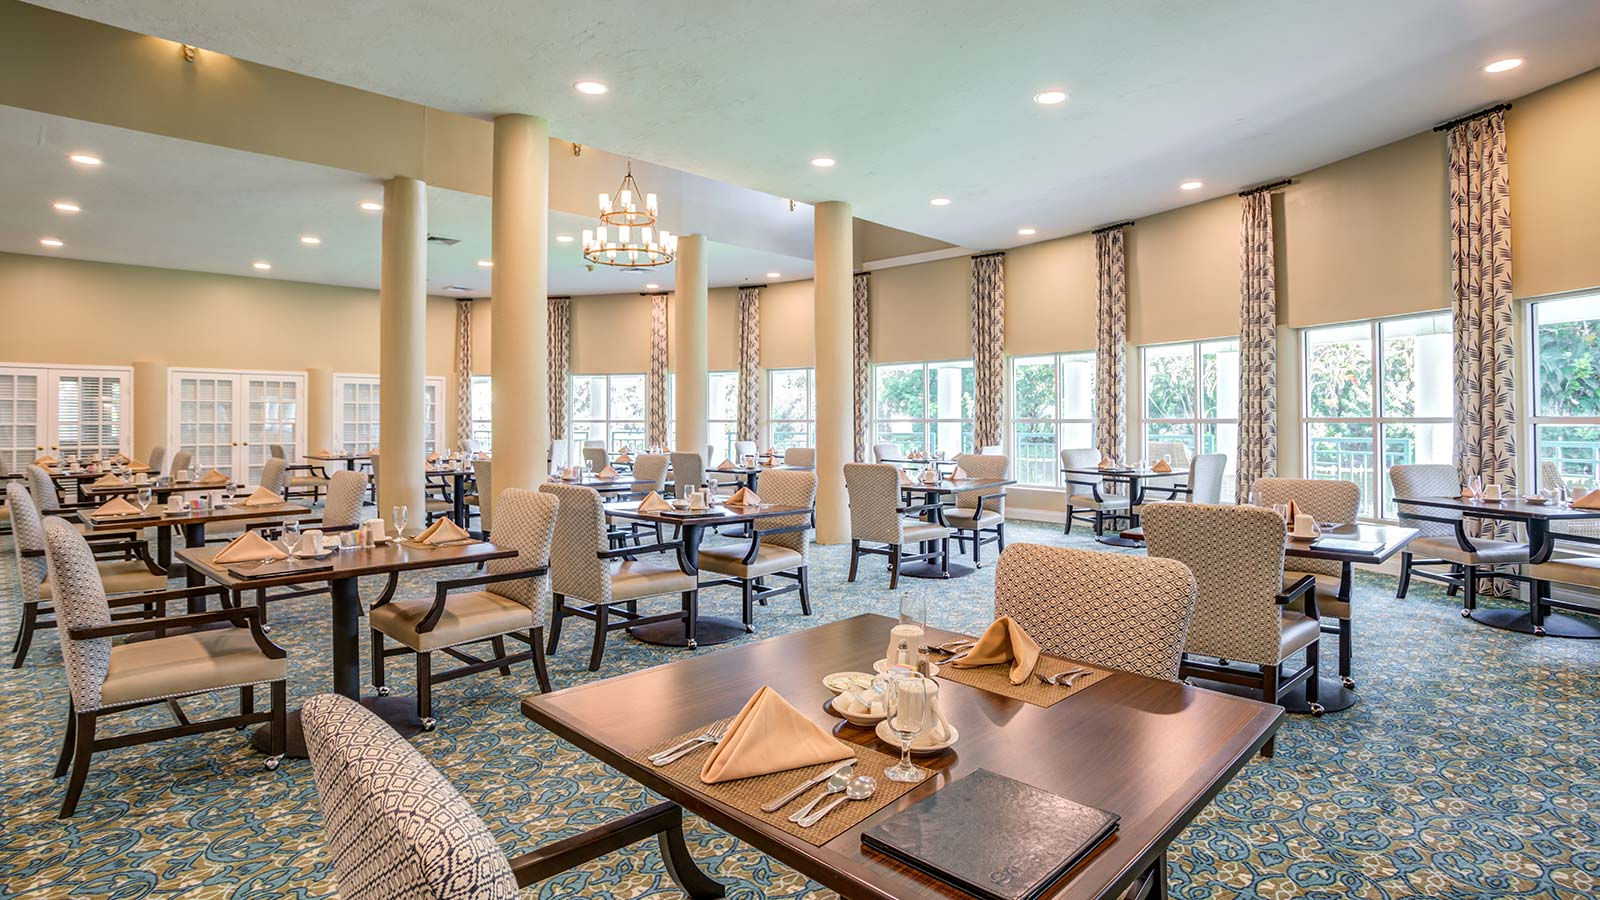 Elegant dining room at Heron Club assisted living and memory care in Sarasota Florida